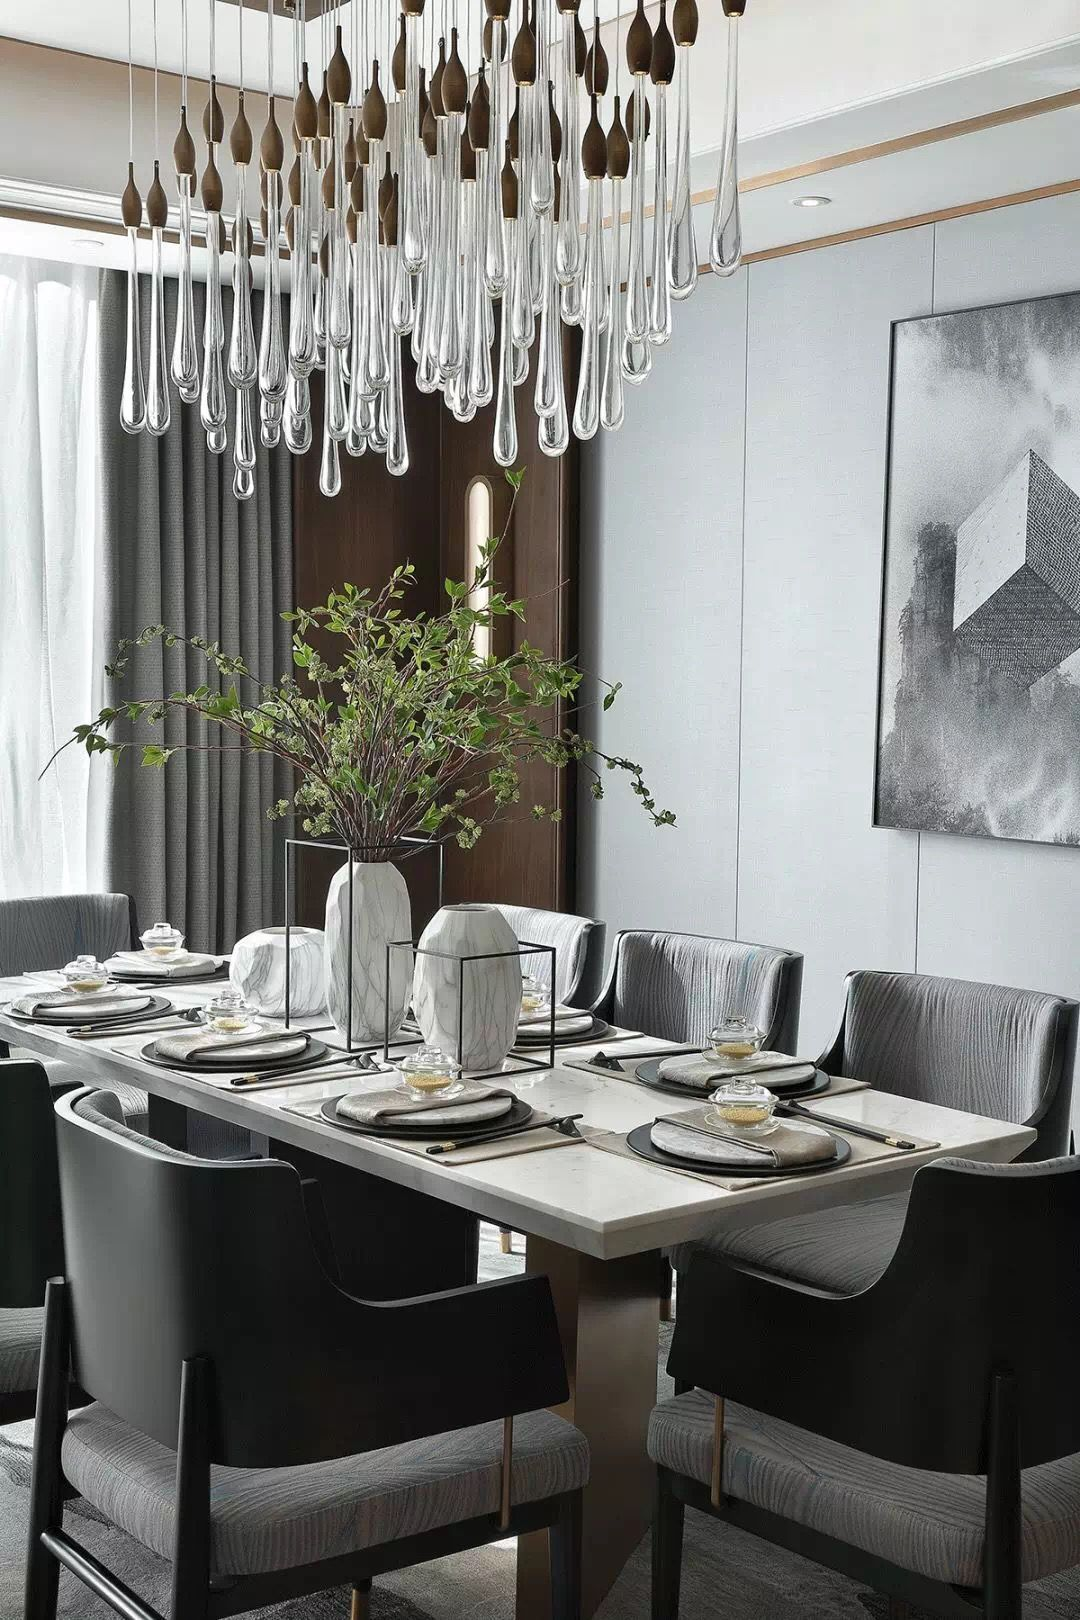 Bring Some Furniture Into Your Interior Design Project Download Our Catalogue To Find The Per Luxury Dining Room Interior Design Dining Room Black Dining Room